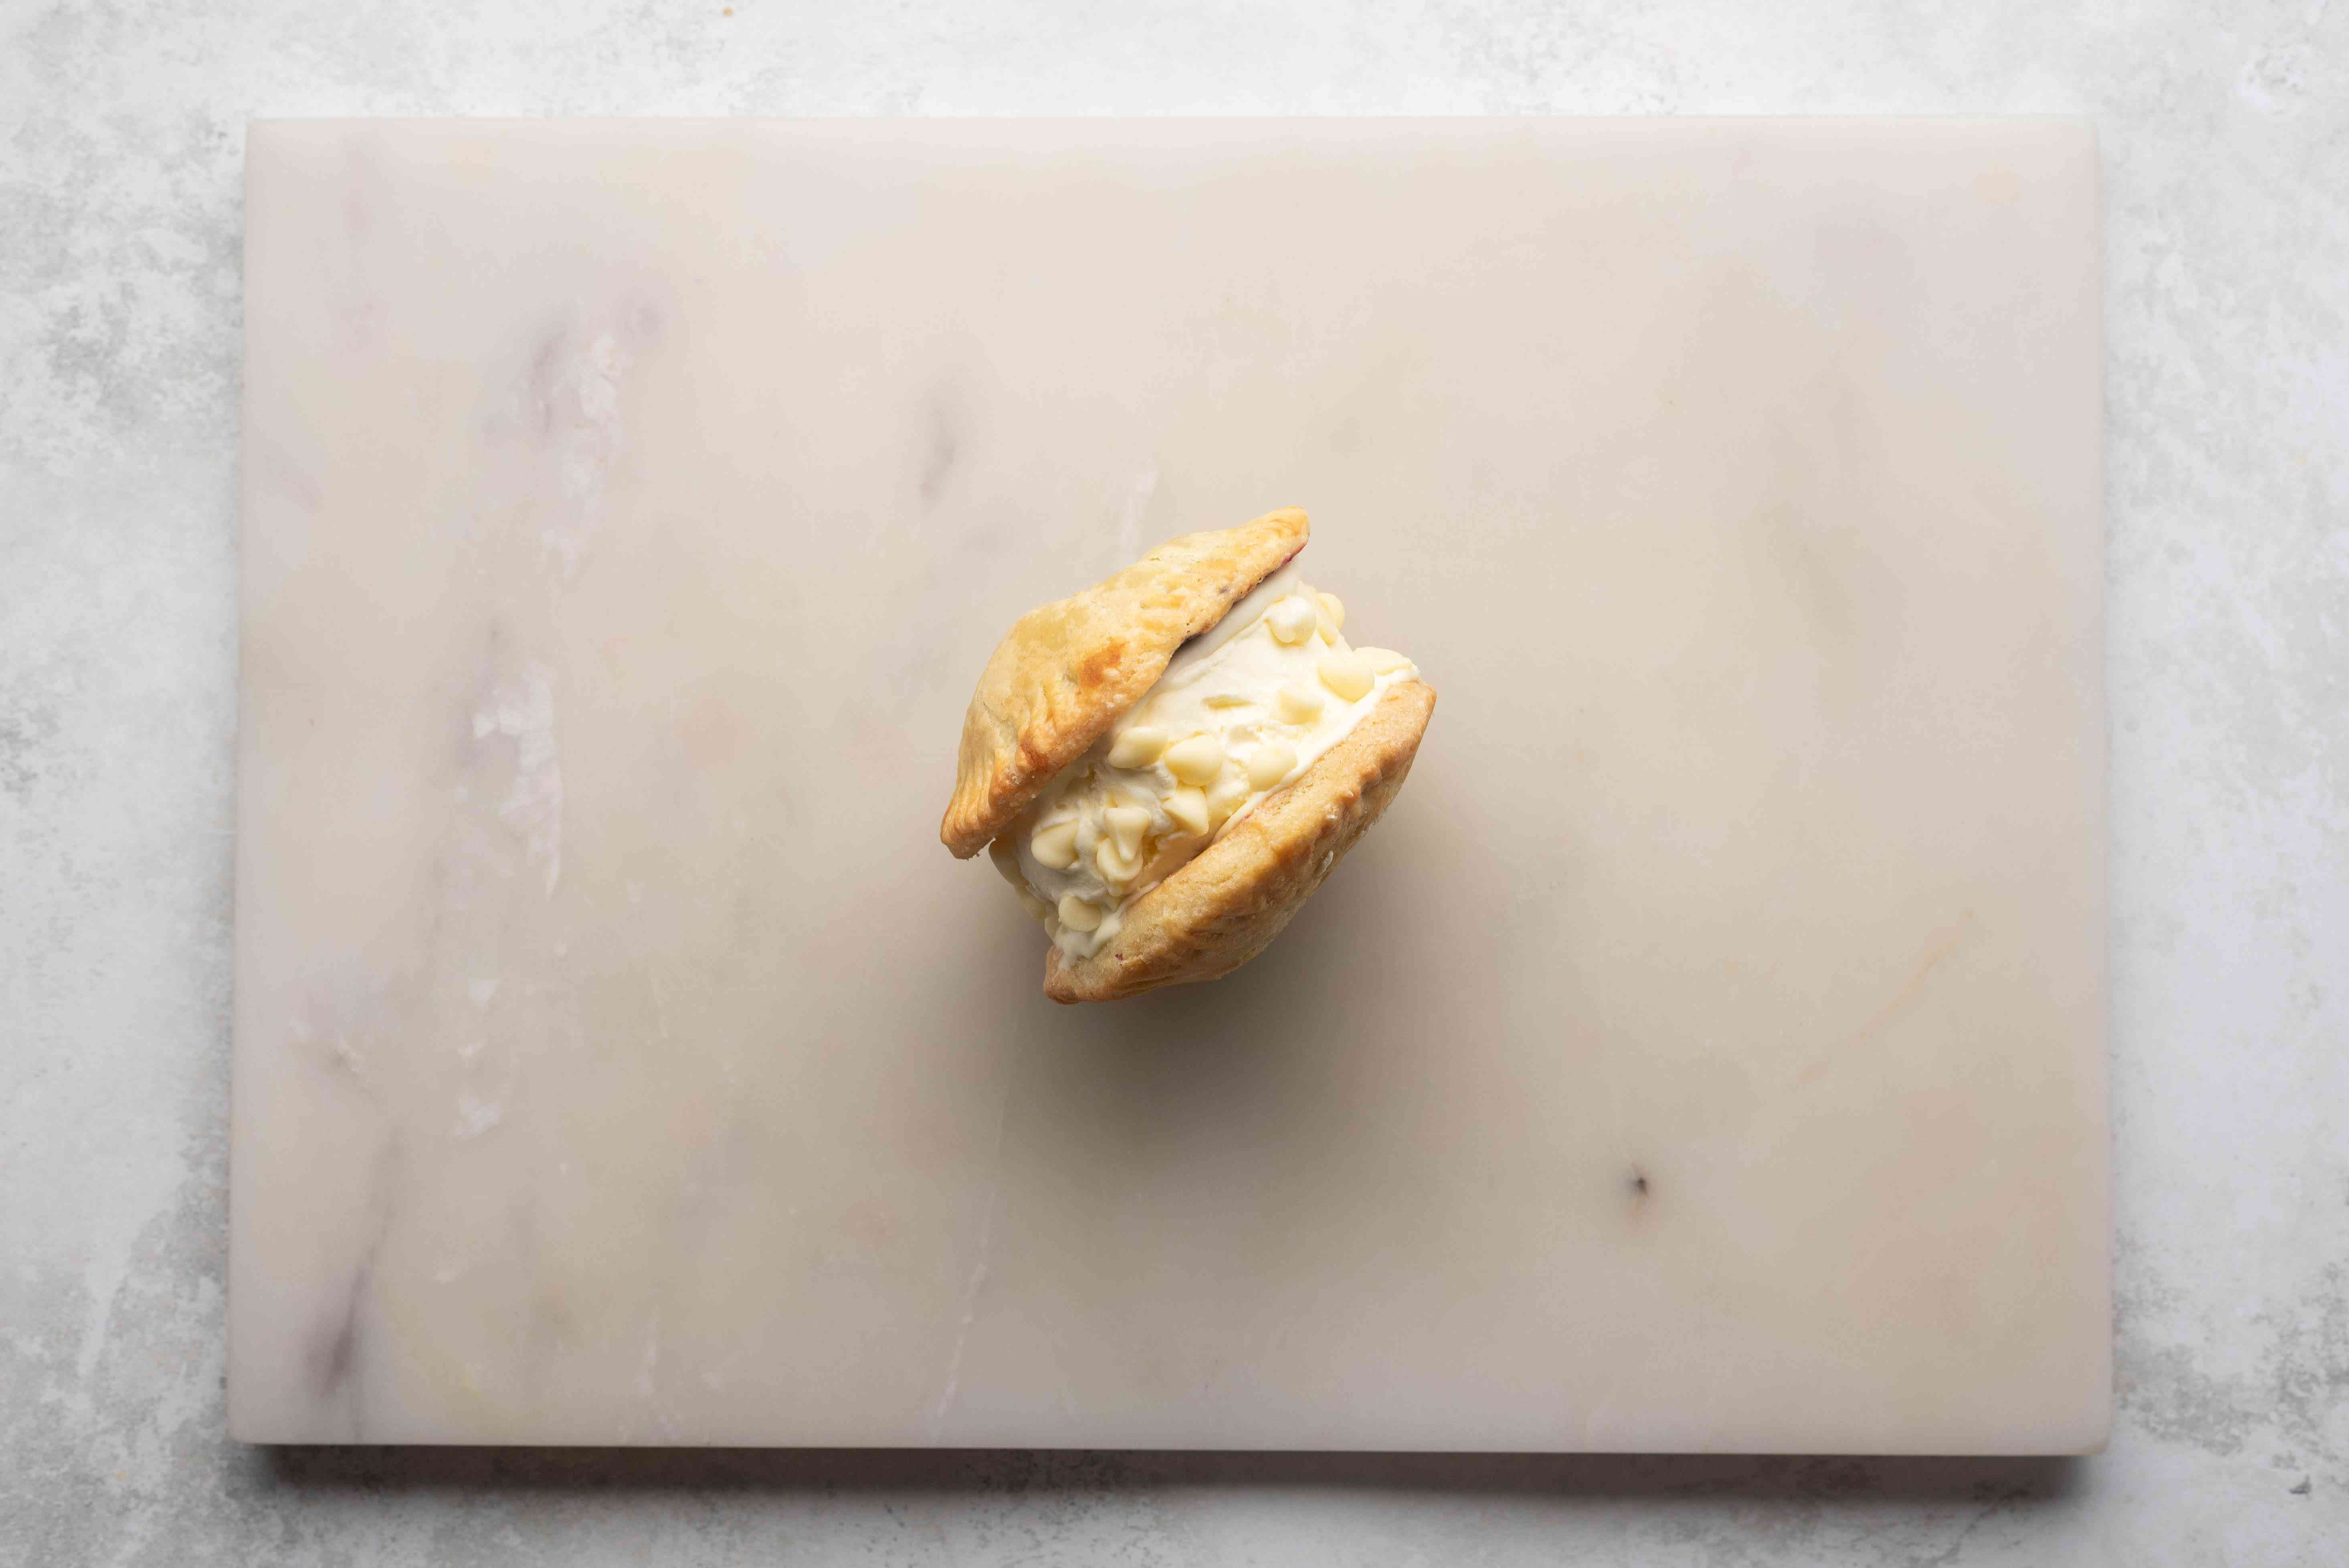 Mini Pie Ice Cream Sandwich with white chocolate chips on the sides, on a cutting board